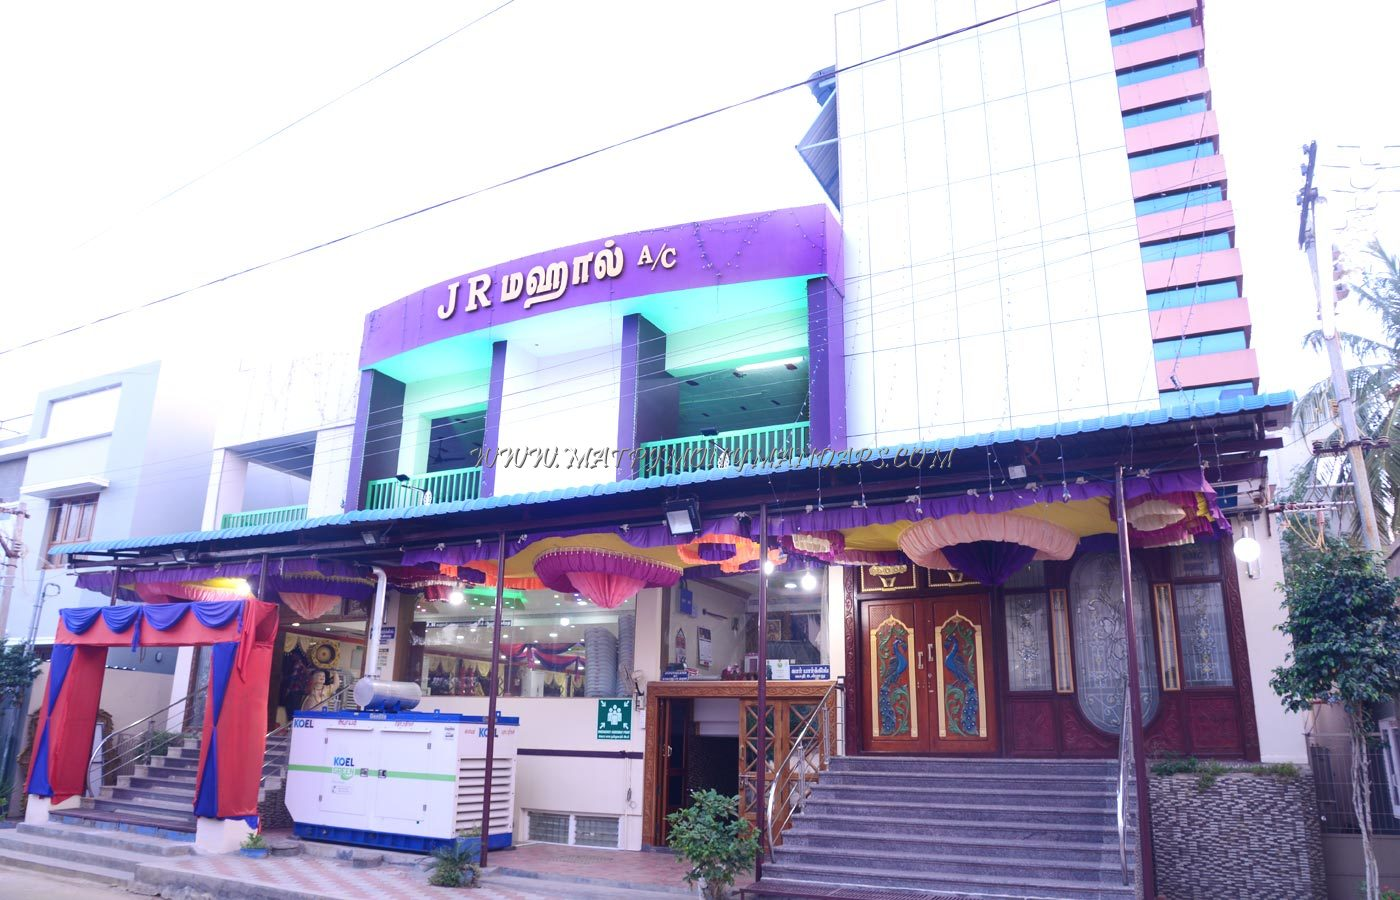 Find the availability of the JR Mahal  (A/C) in Thiruppalai, Madurai and avail special offers